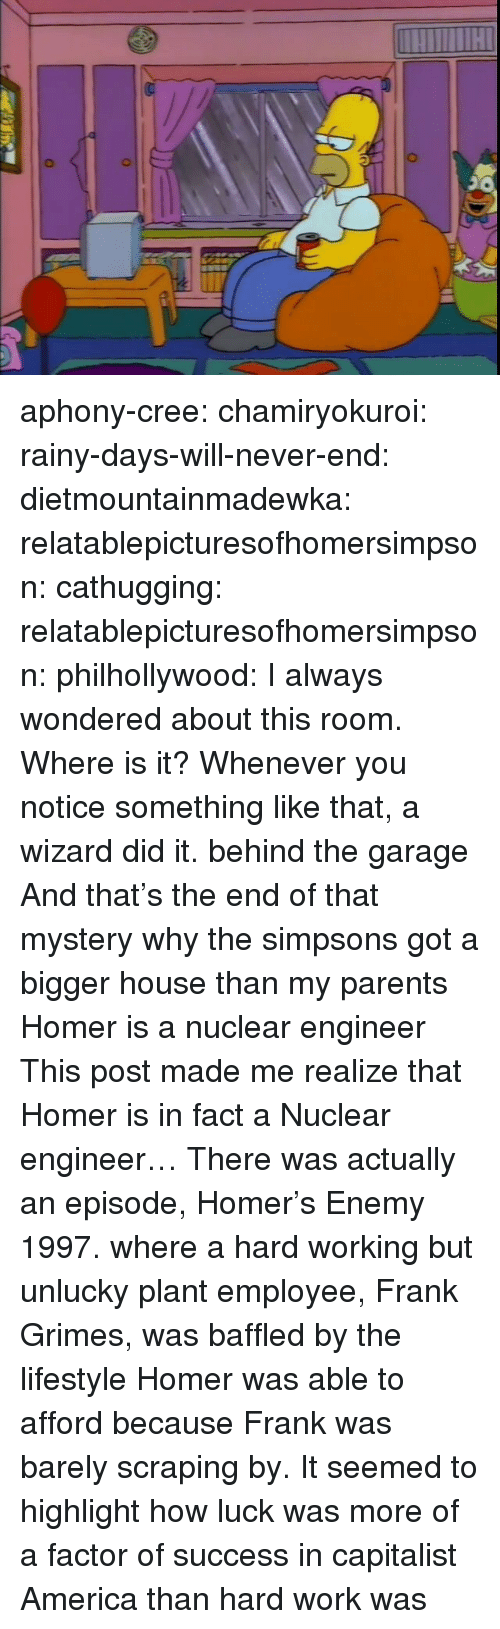 cree: aphony-cree:  chamiryokuroi: rainy-days-will-never-end:  dietmountainmadewka:   relatablepicturesofhomersimpson:  cathugging:  relatablepicturesofhomersimpson:   philhollywood:  I always wondered about this room. Where is it?  Whenever you notice something like that, a wizard did it.    behind the garage  And that's the end of that mystery   why the simpsons got a bigger house than my parents   Homer is a nuclear engineer   This post made me realize that Homer is in fact a Nuclear engineer…  There was actually an episode, Homer's Enemy 1997. where a hard working but unlucky plant employee, Frank Grimes, was baffled by the lifestyle Homer was able to afford because Frank was barely scraping by. It seemed to highlight how luck was more of a factor of success in capitalist America than hard work was